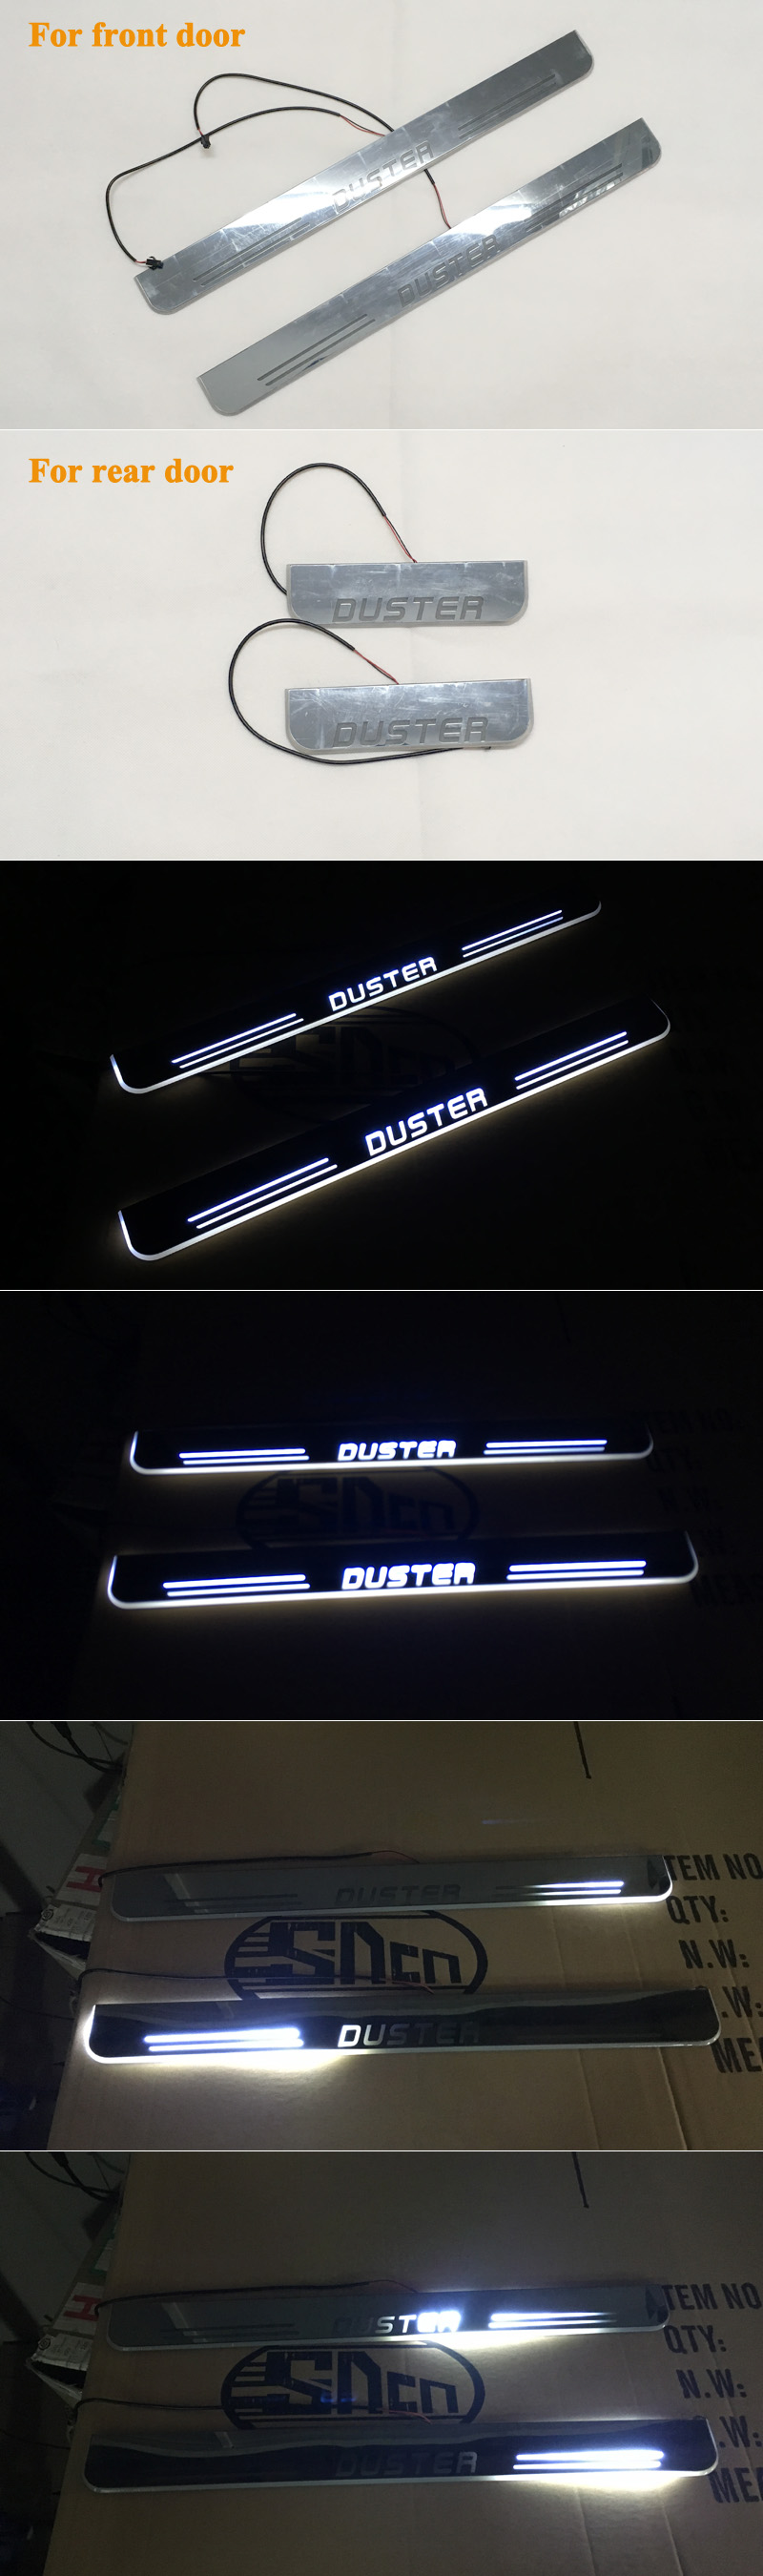 Duster Pedal